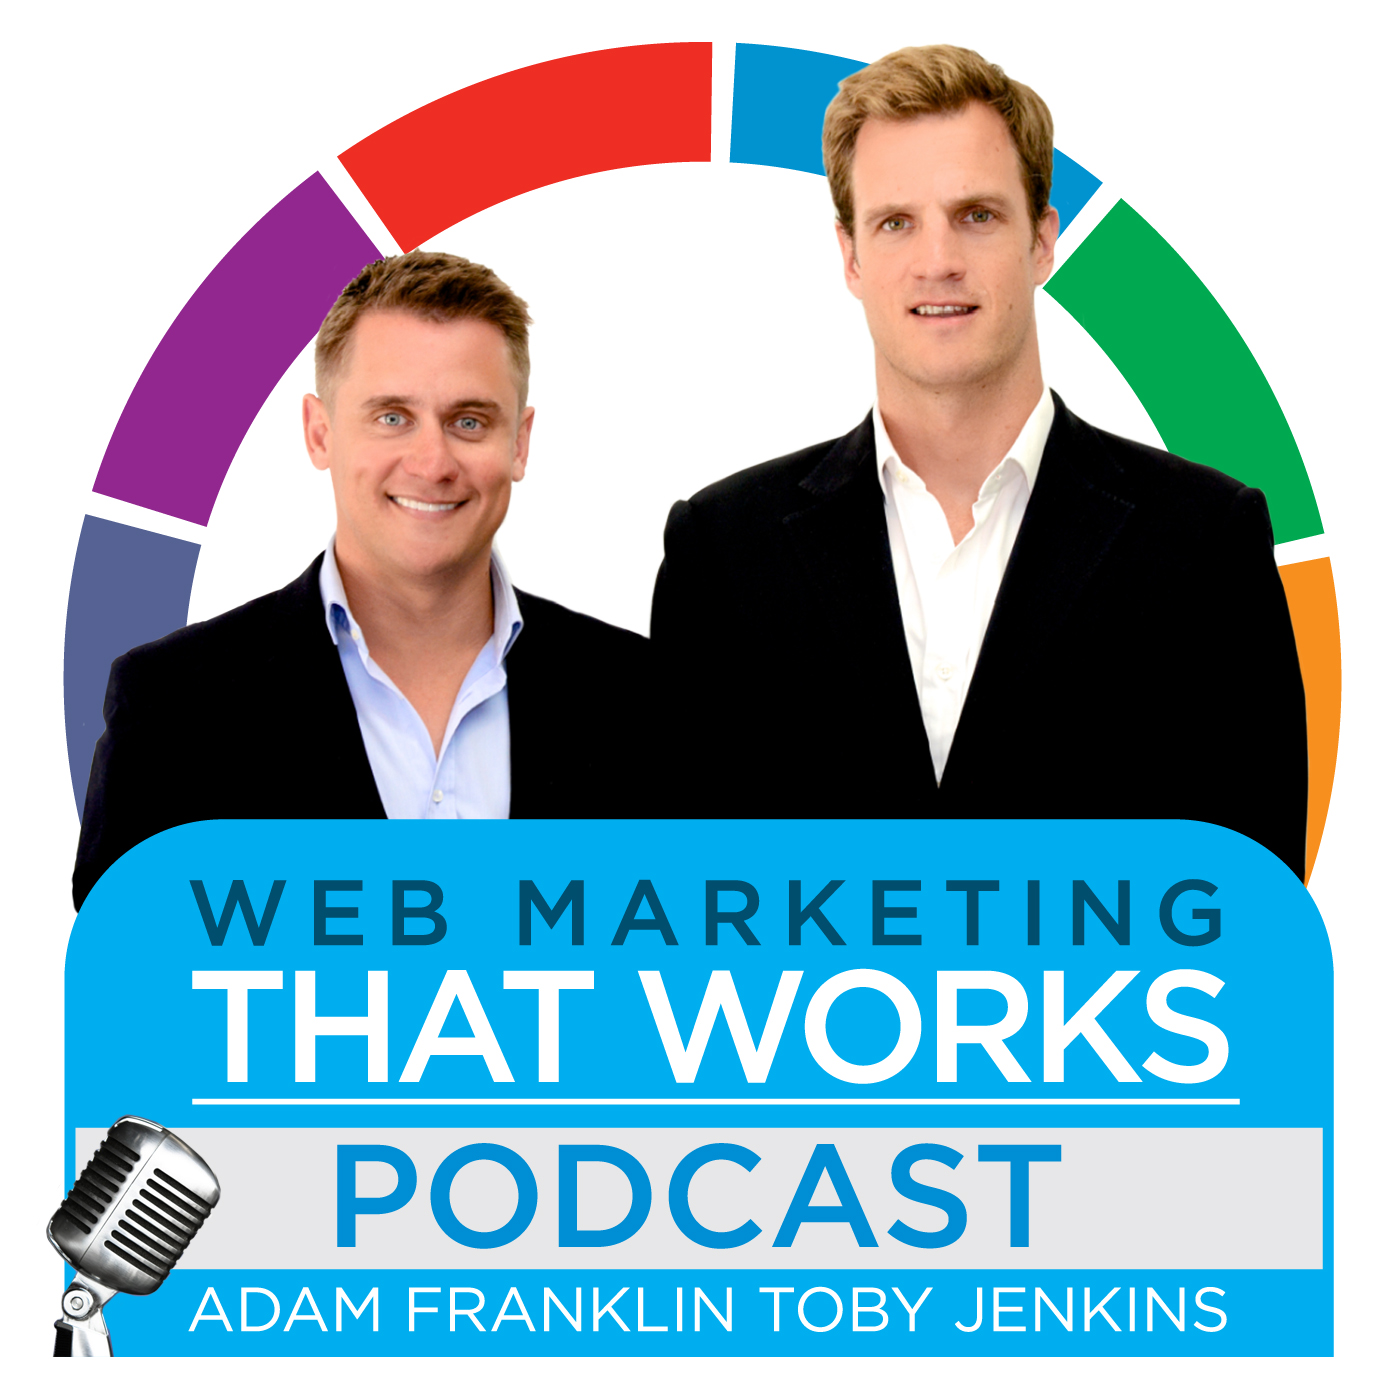 Web Marketing That Works | Useful chats about social media, email marketing, SEO and content marketing